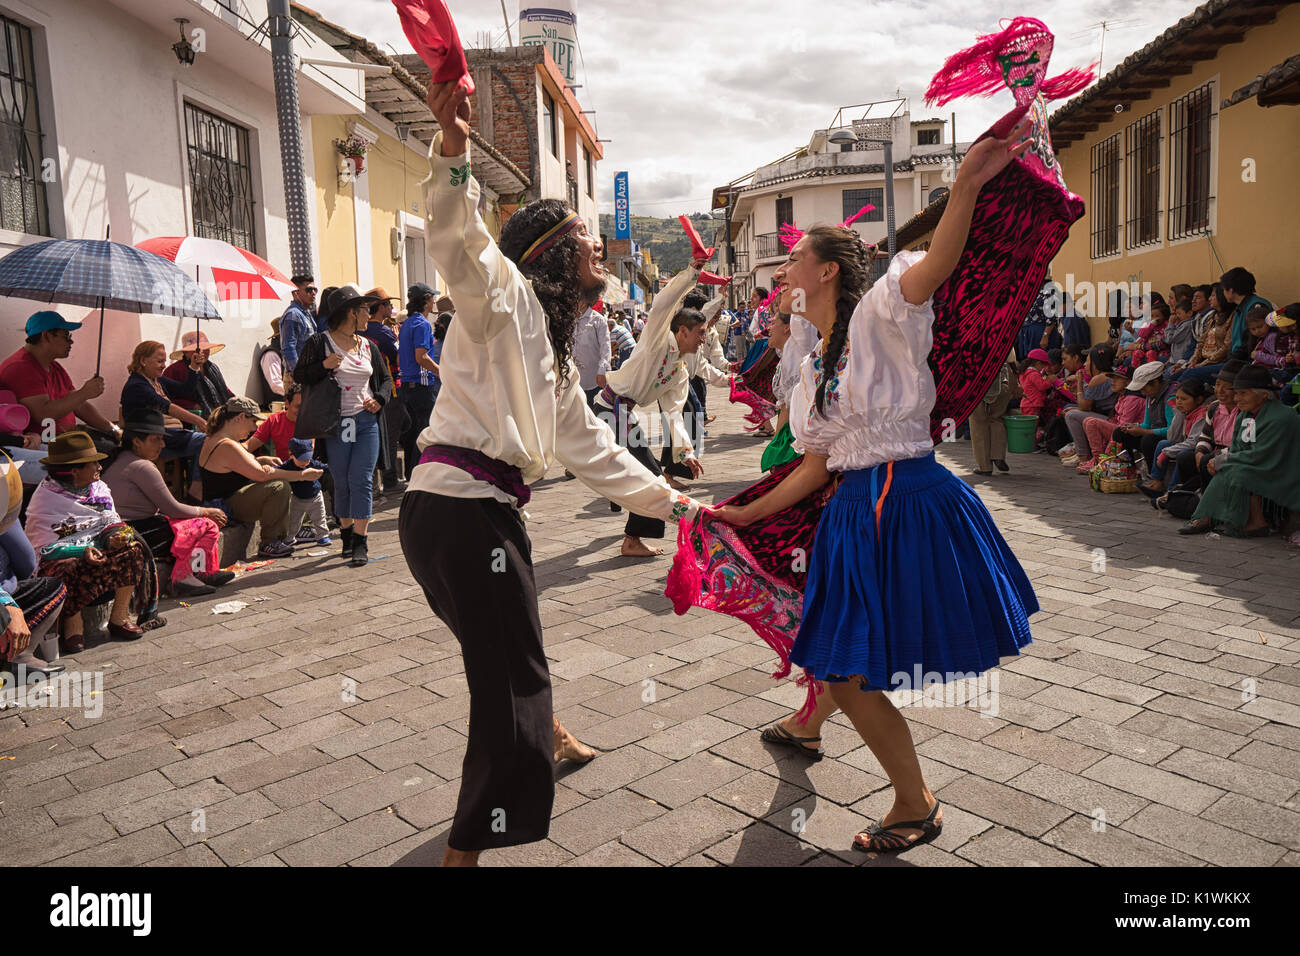 June 17, 2017 Pujili, Ecuador: street dancers performing in traditional clothing during Corpus Christi Stock Photo